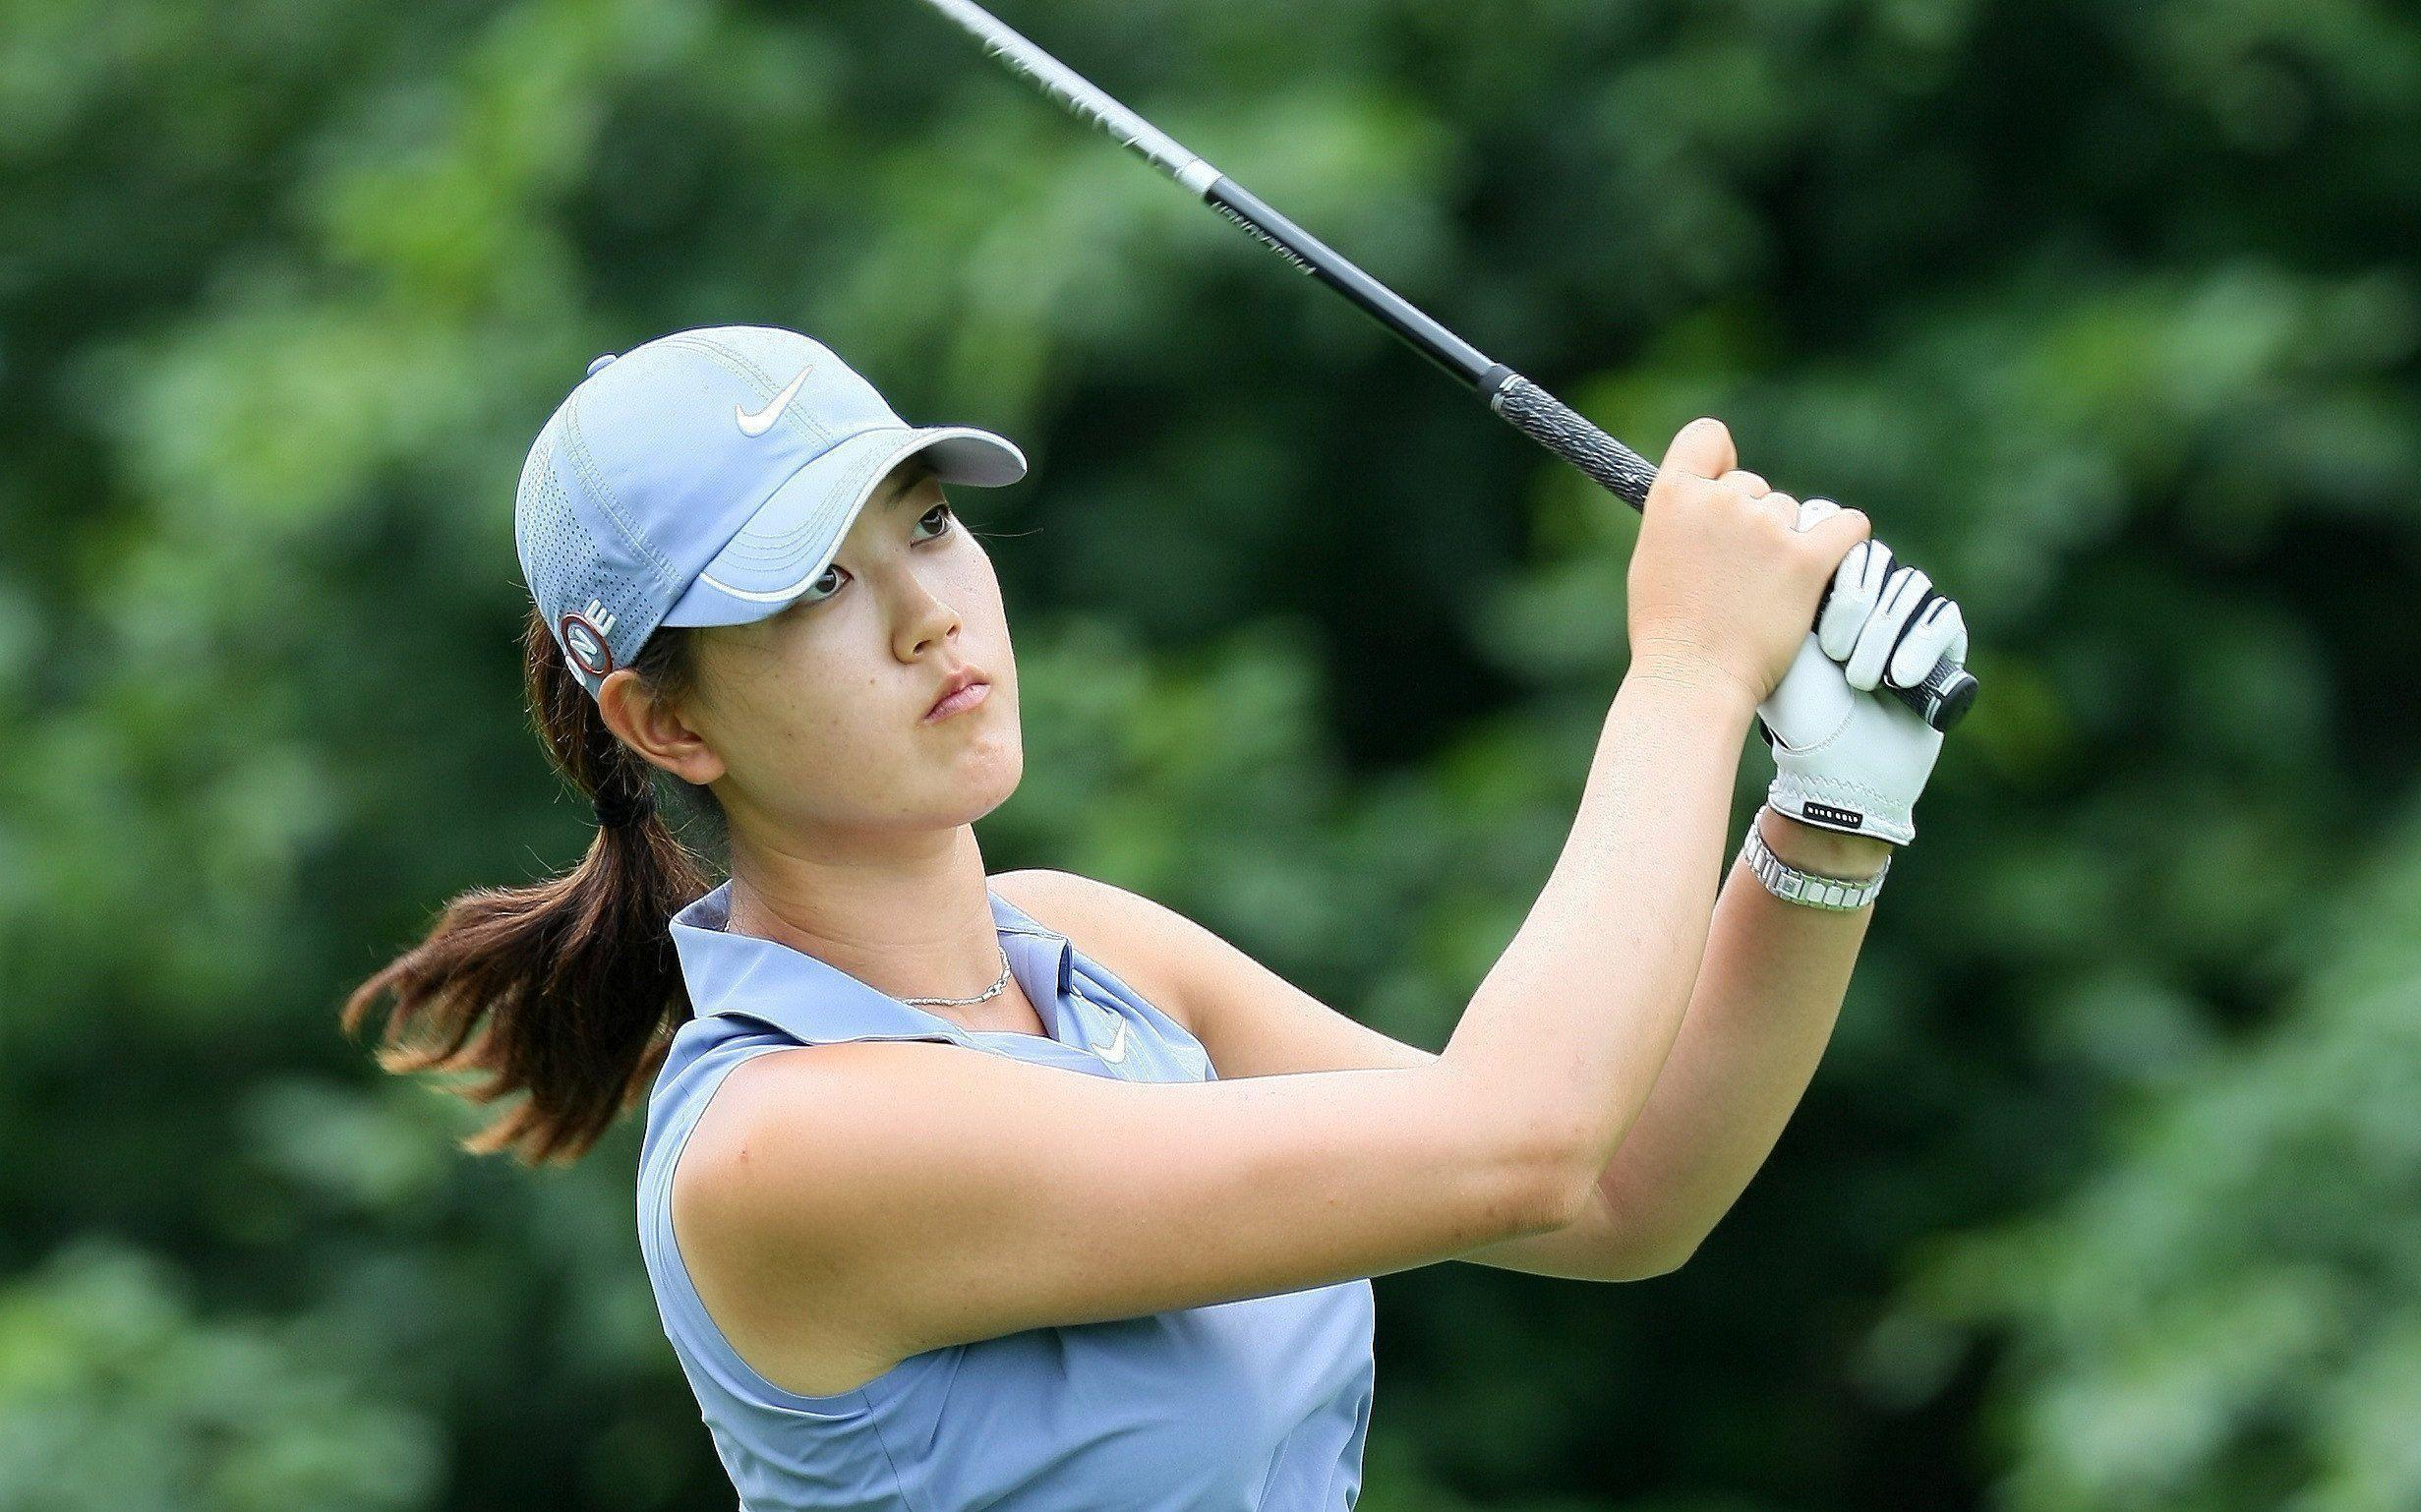 Michelle Wie Wallpapers - Wallpaper Cave